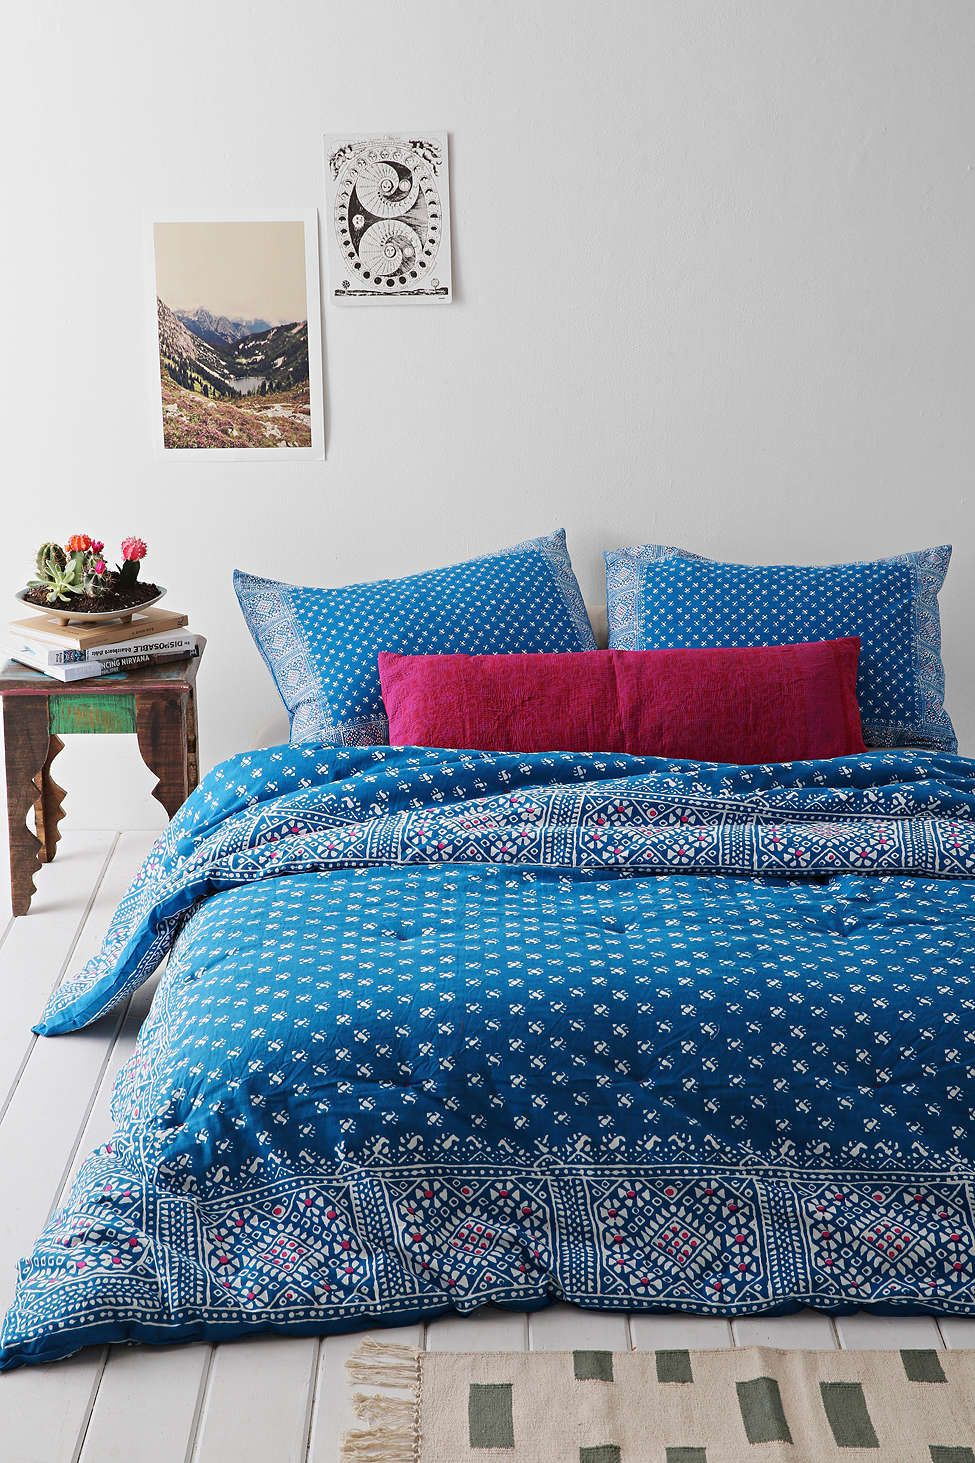 Magical Thinking Calicut Comforter In 2020 Magical Thinking Comforters Bedding Sets